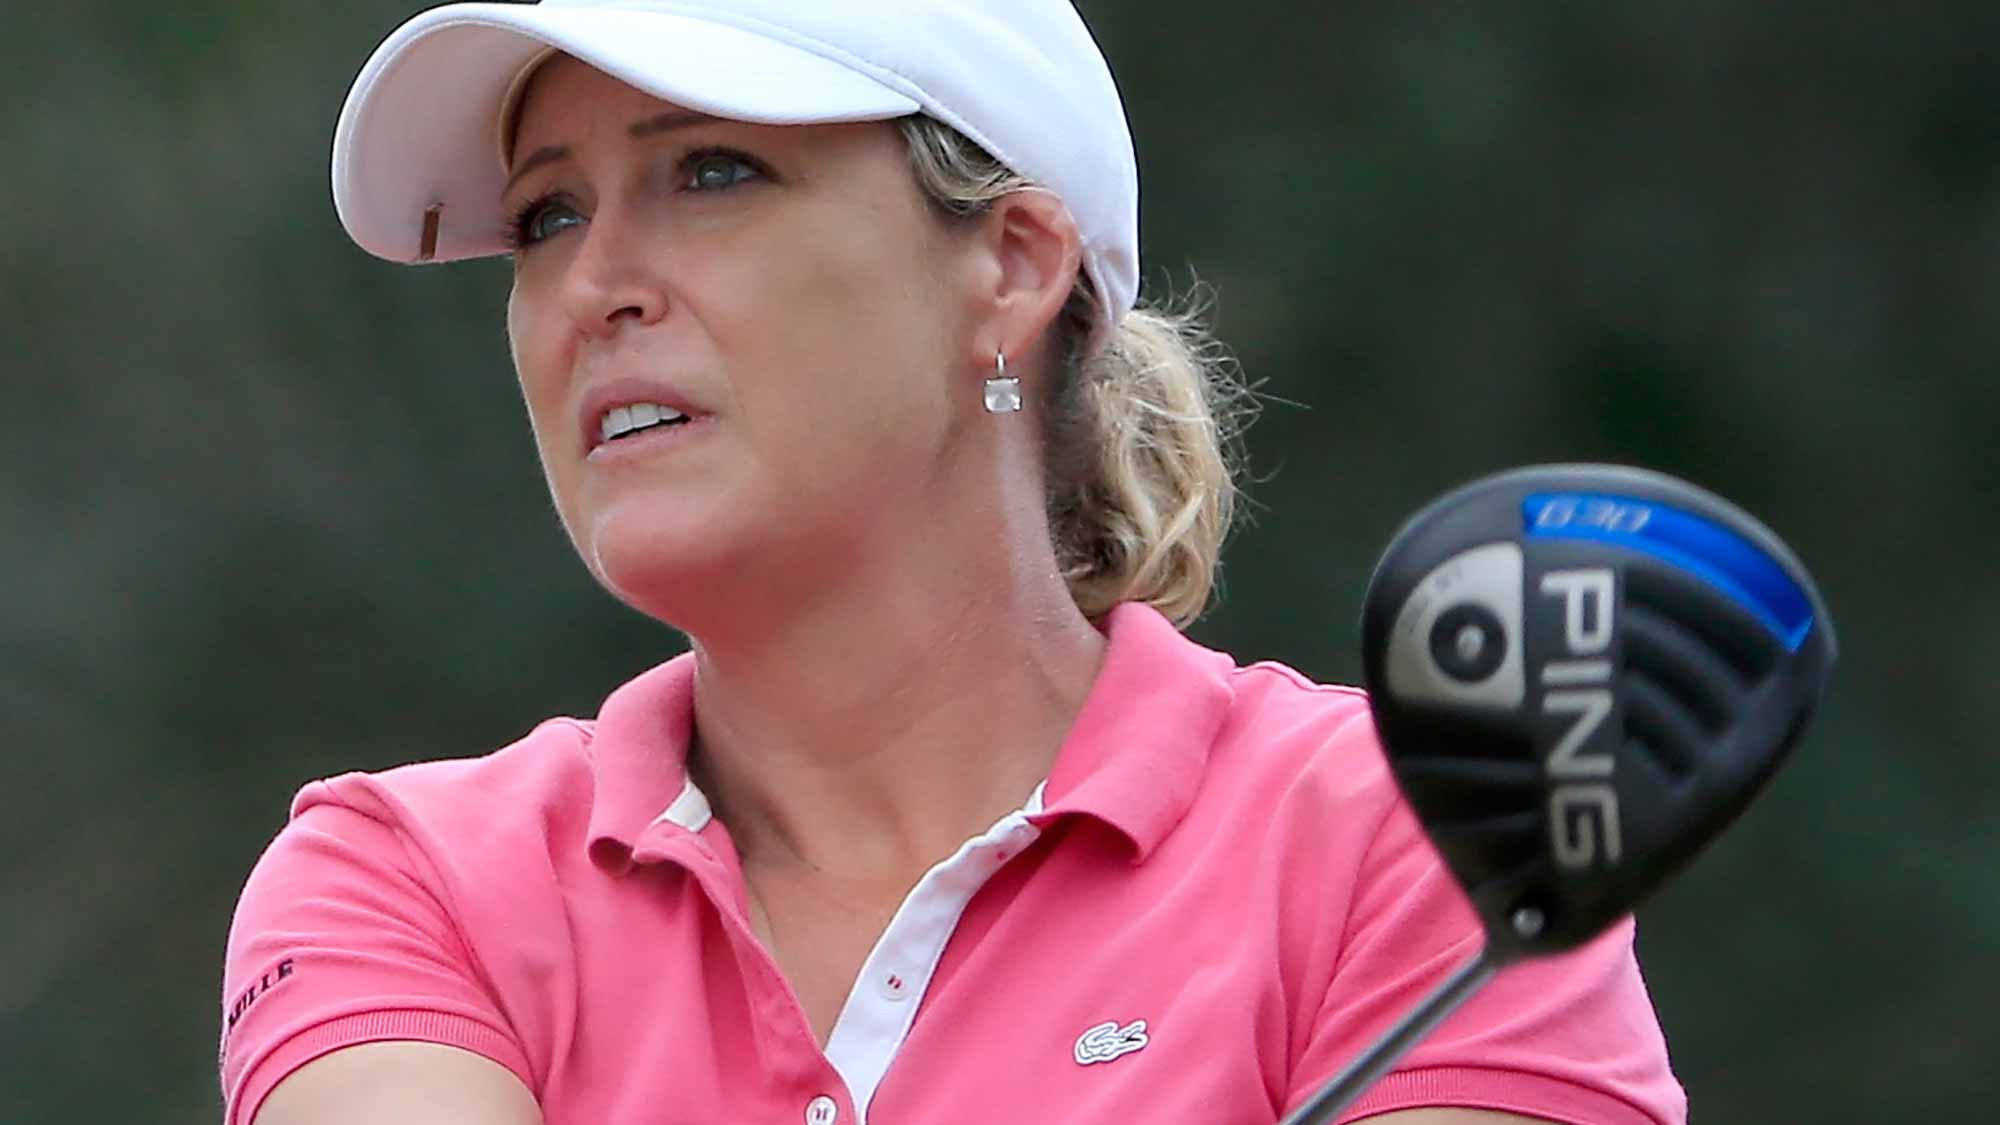 Cristie Kerr of the United States plays a shot on the 13th hole during the third round of the CME Group Tour Championship at Tiburon Golf Club